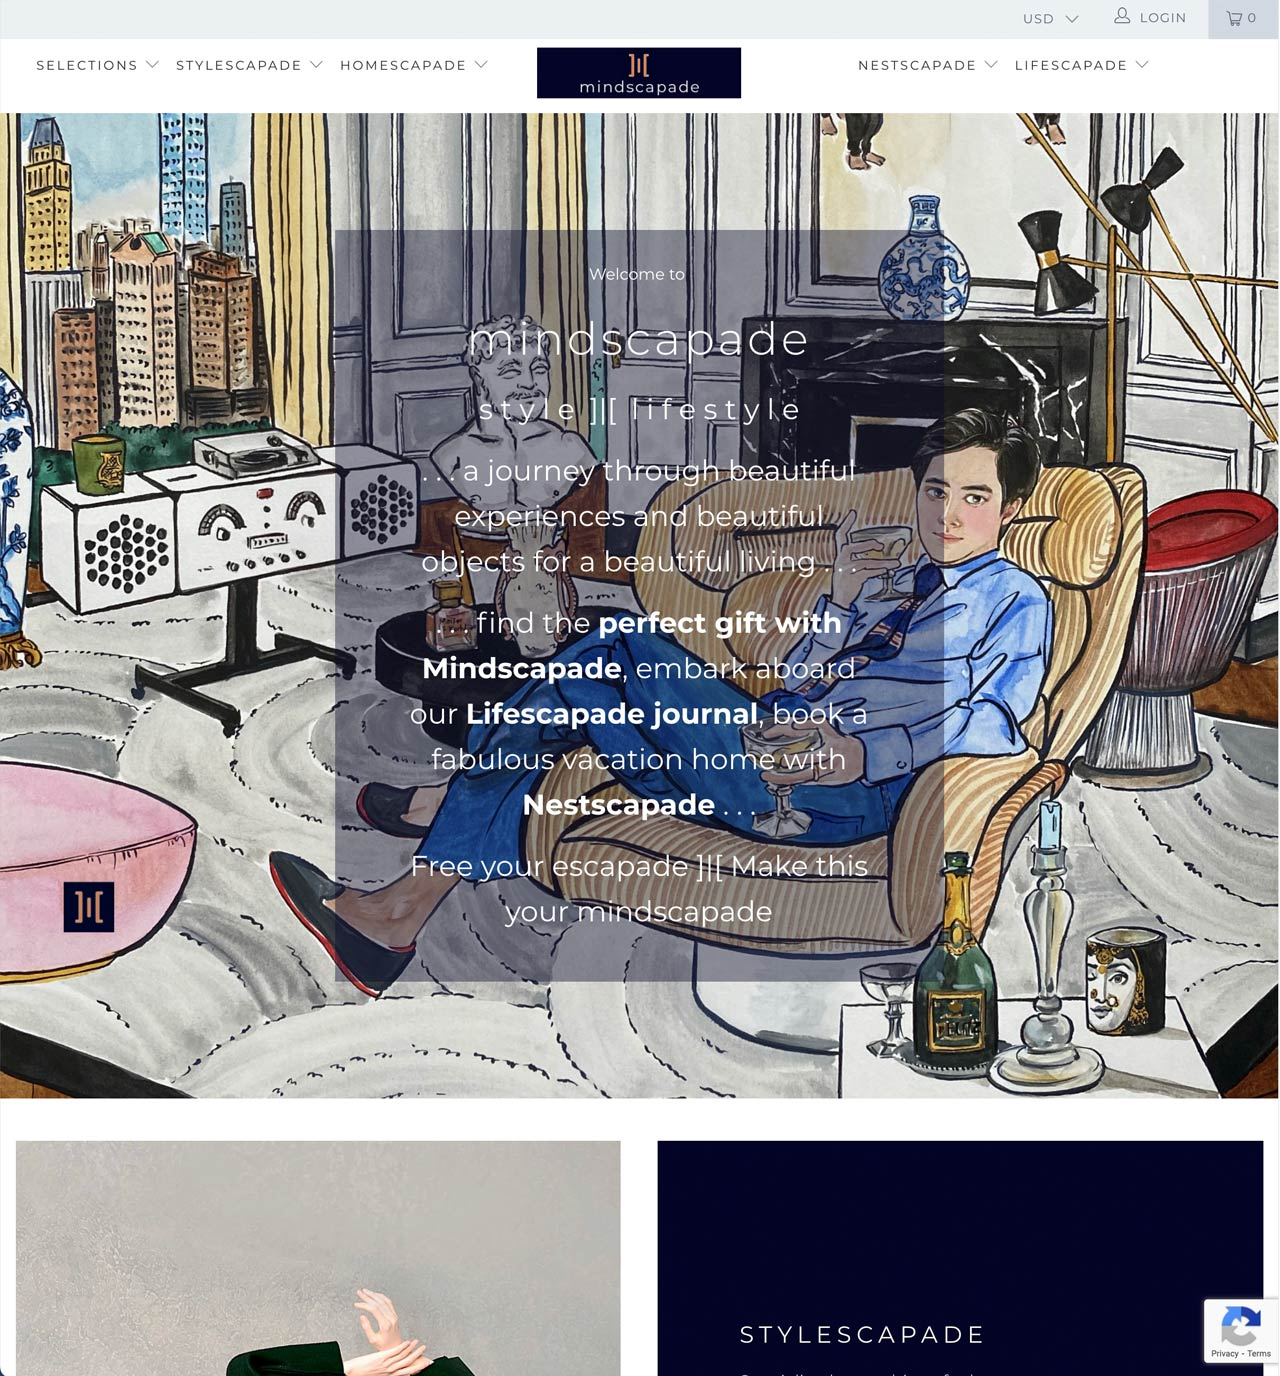 Illustration of elegantly clad man reclining on sofa surrounded by works of art, plus a view from high-rise of Manhattan's skyscraper skyline.